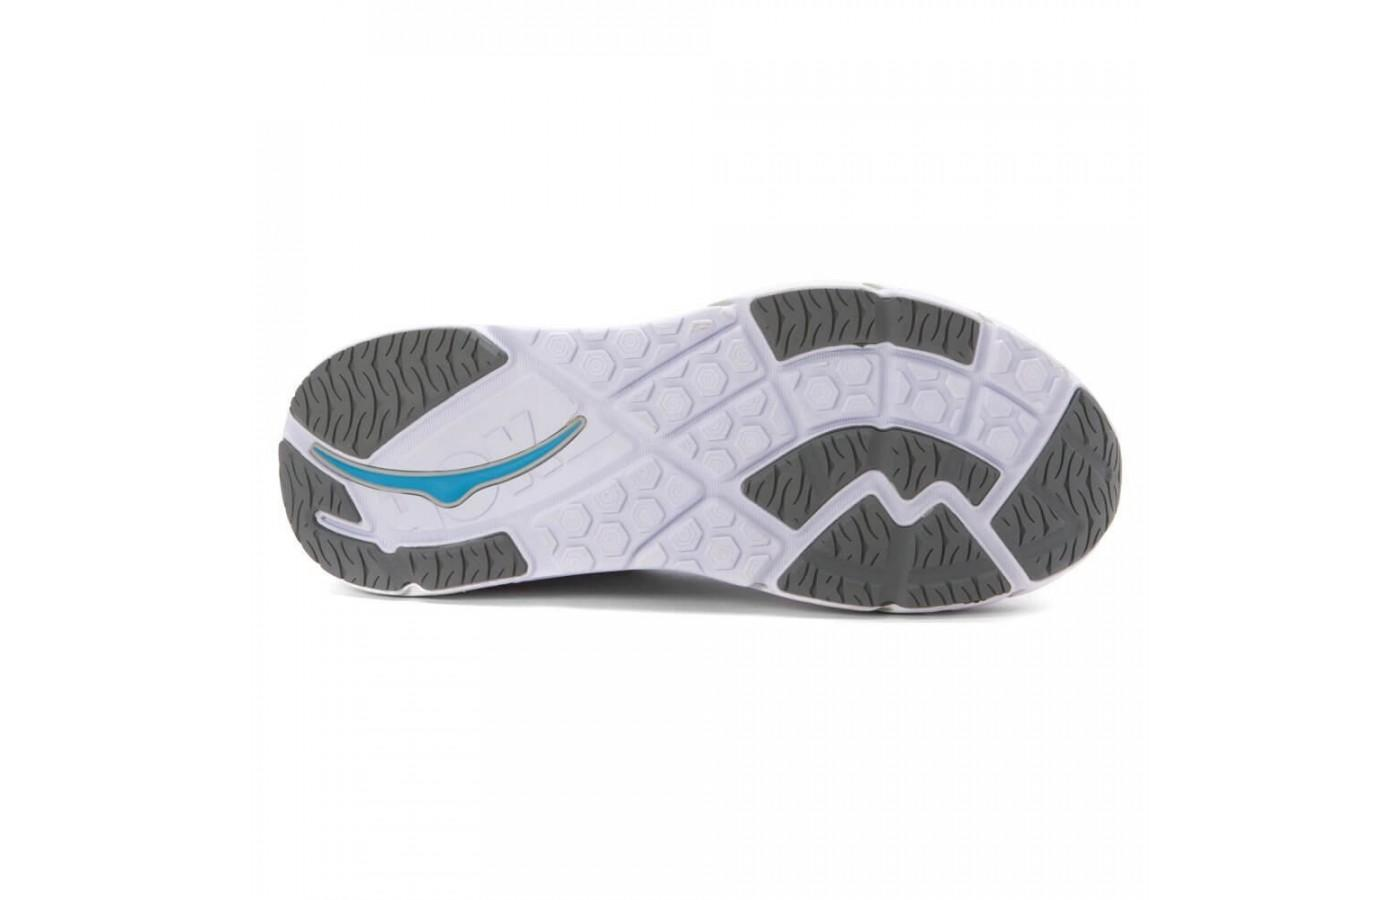 The outsole of the Hoka One One Valor designed to provide continual ground contact